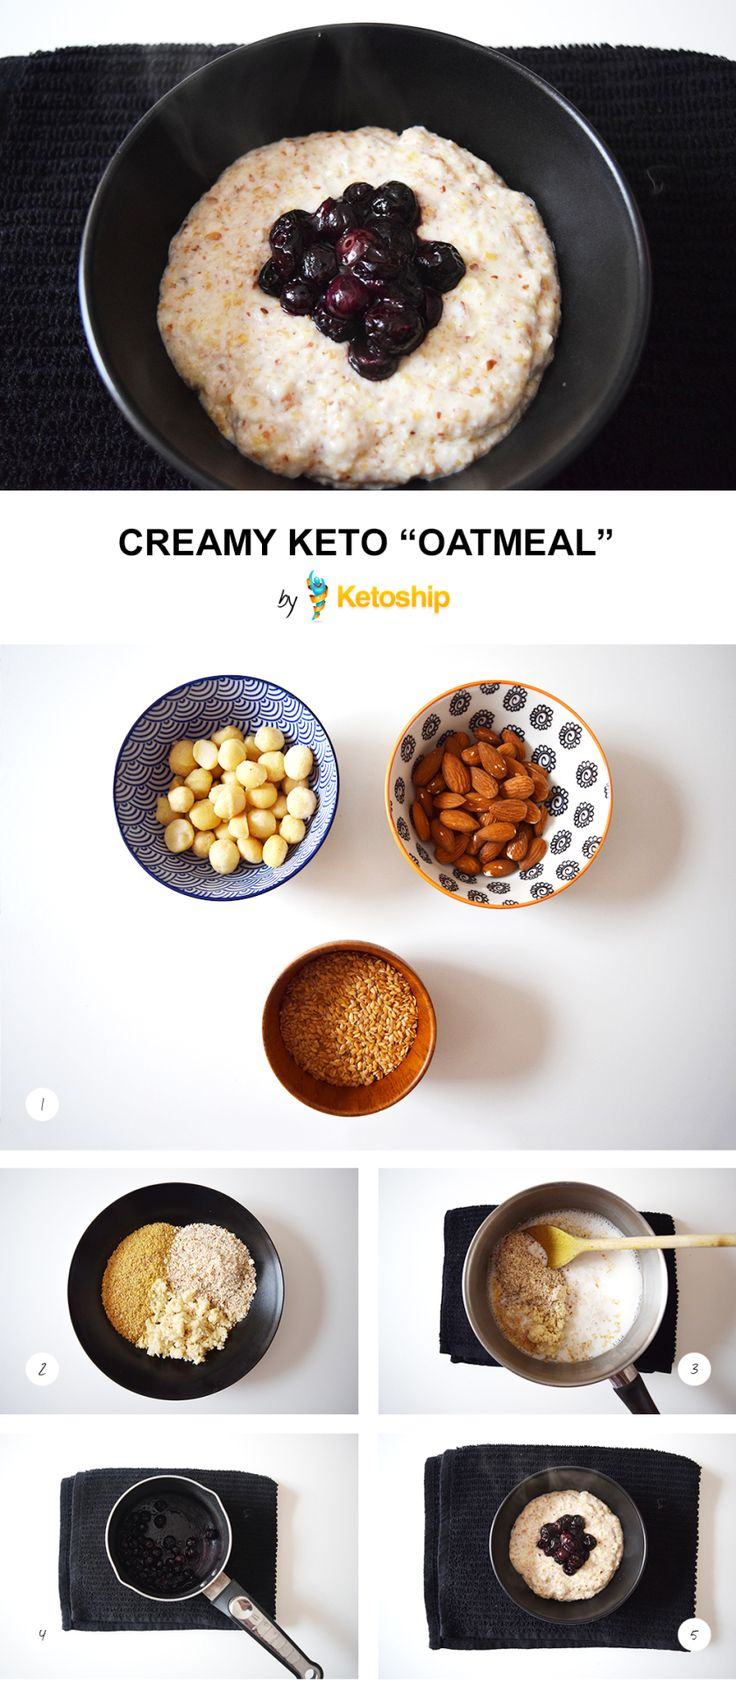 Creamy Keto Oatmeal recipe | Ketoship | Delicious Recipes ...